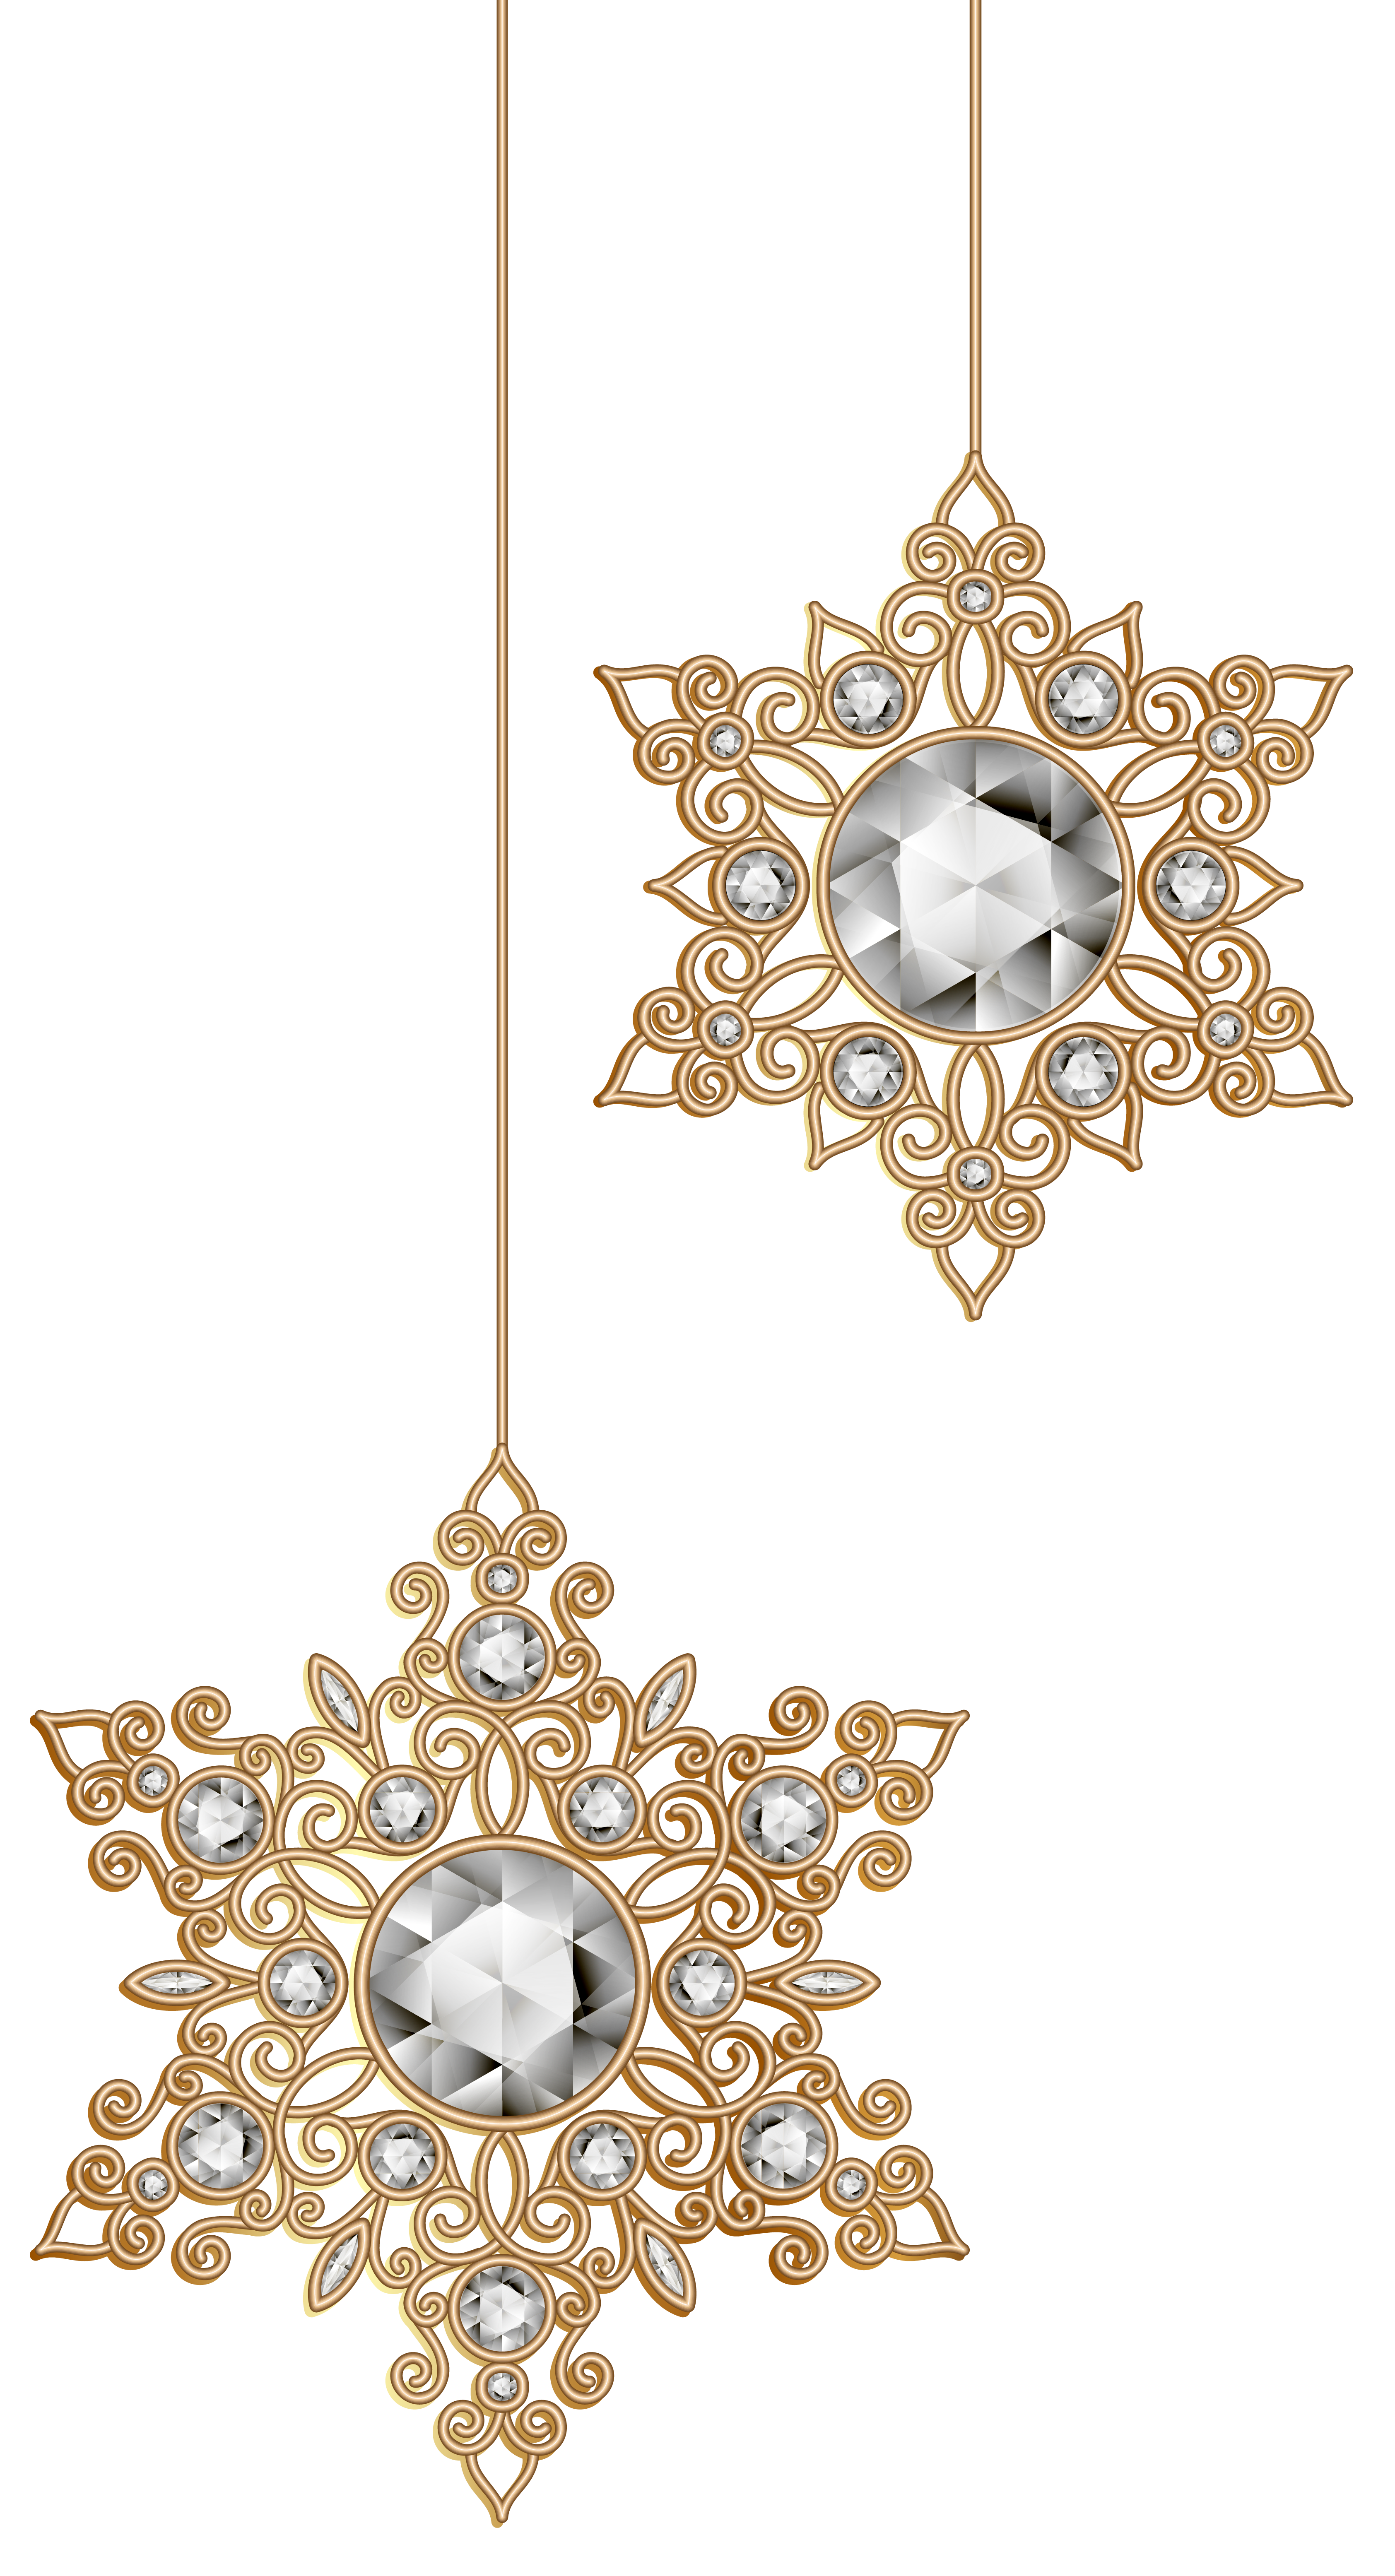 Christmas jewerly ornaments png. Snowflakes clip art image